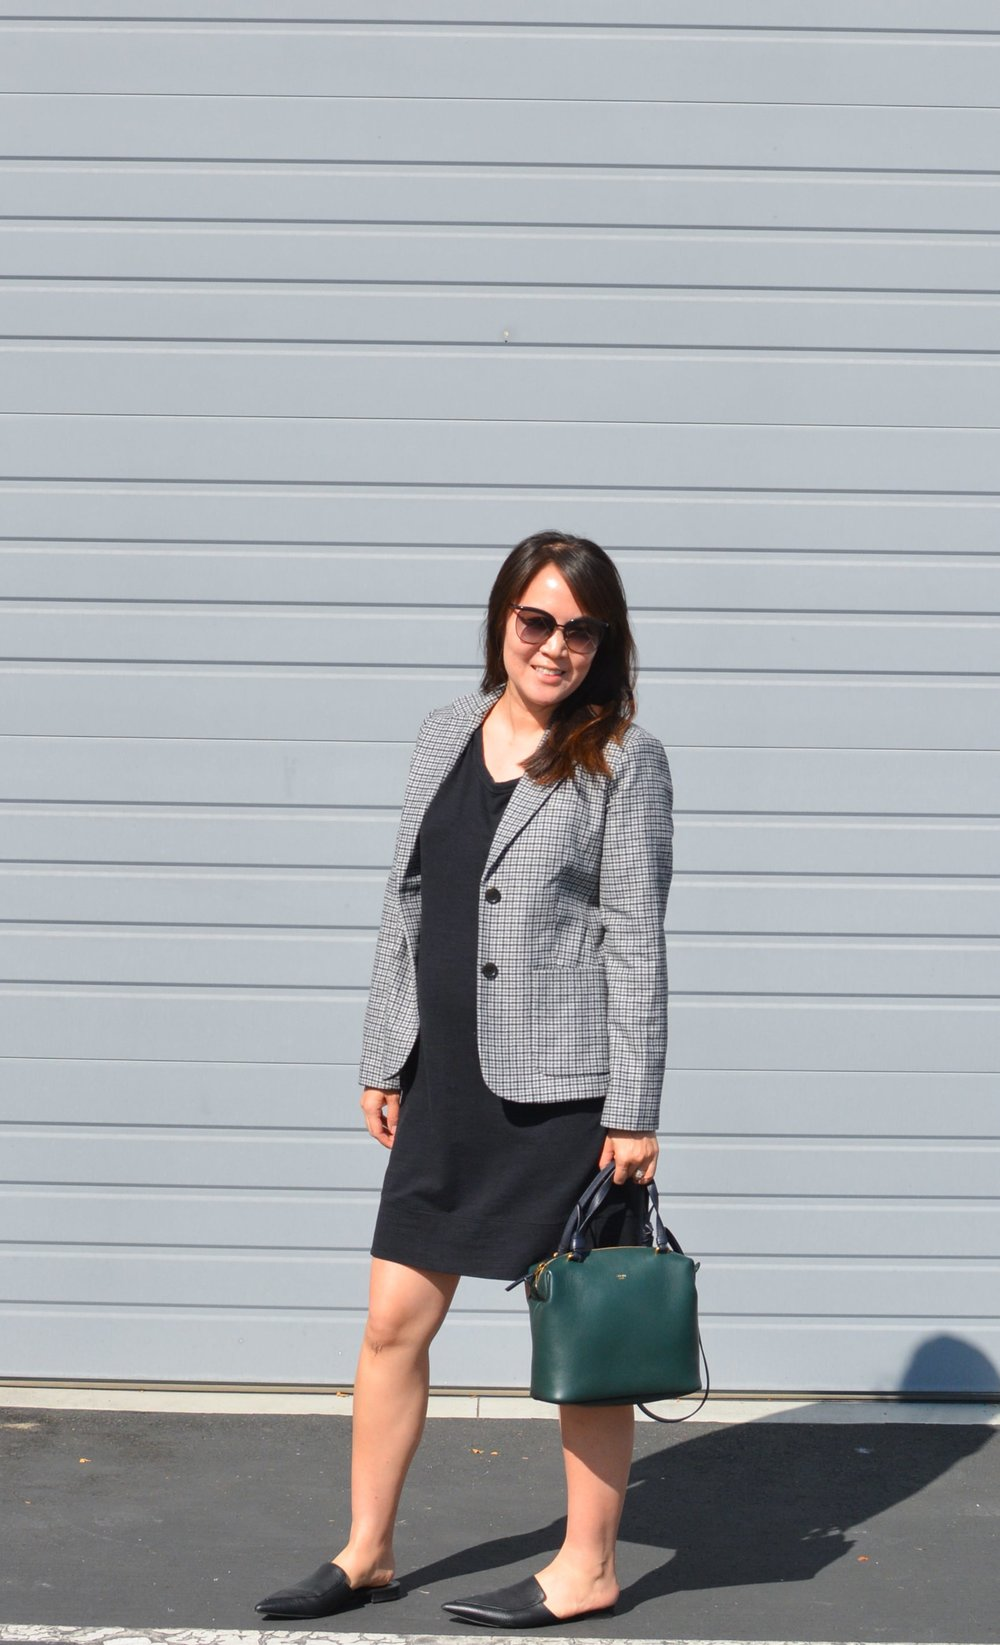 Everlane Review The Wool Academy Blazer (6 of 6)-min.jpg